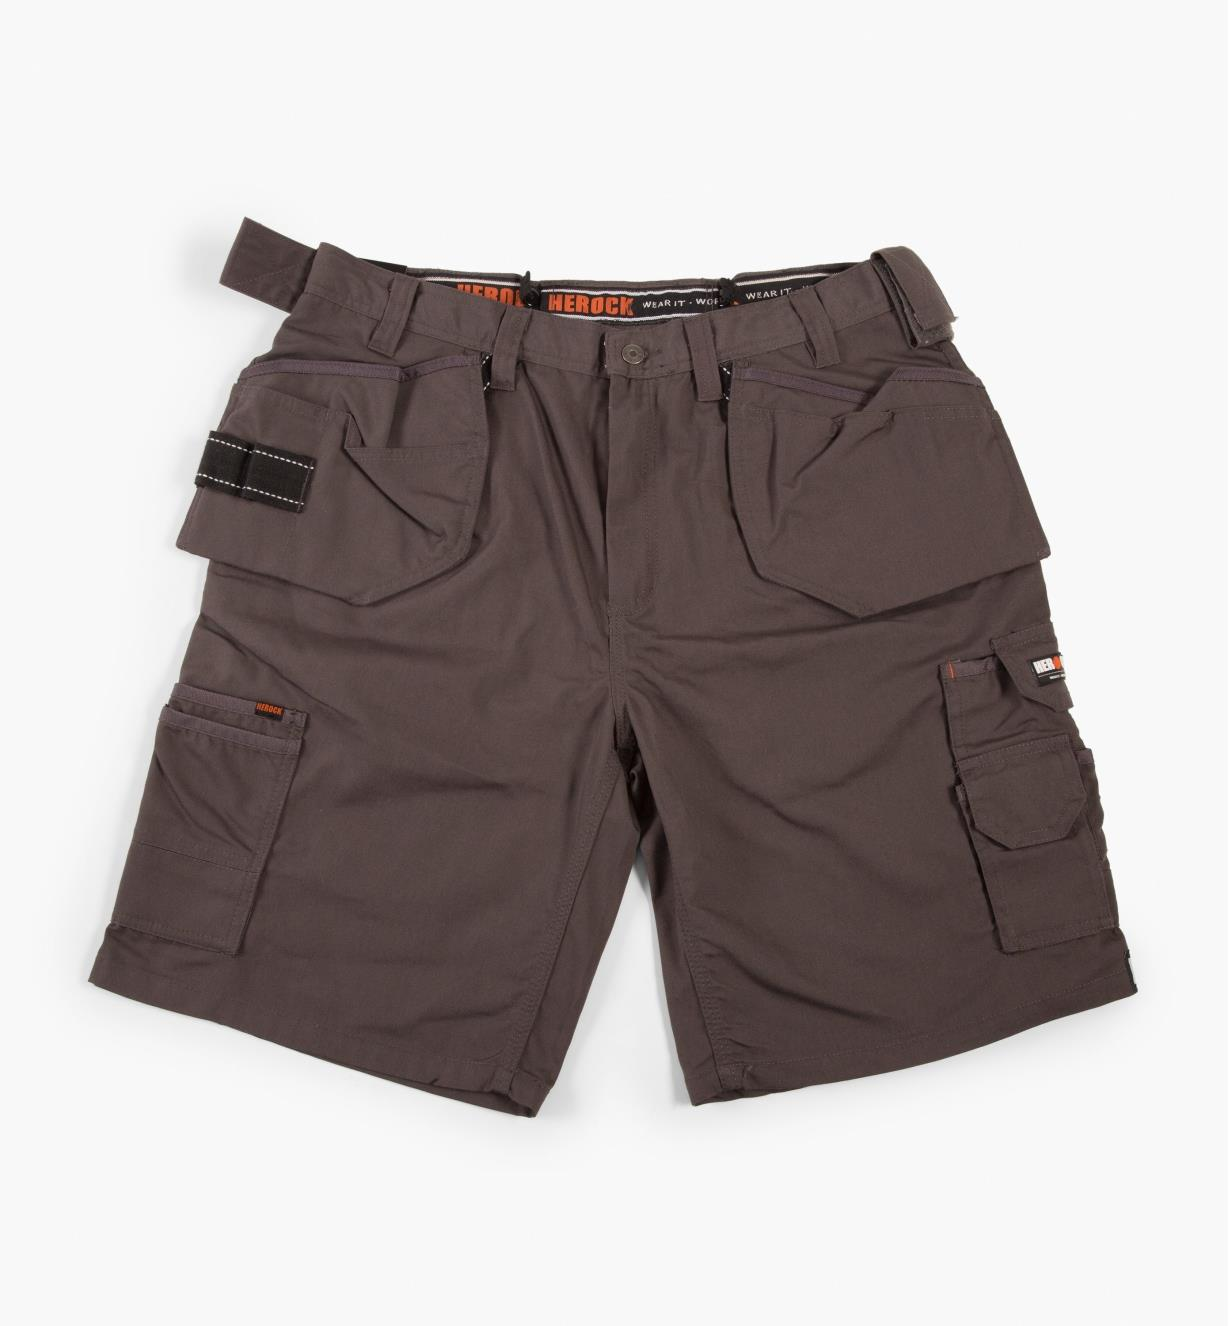 Gray Pallas Shorts